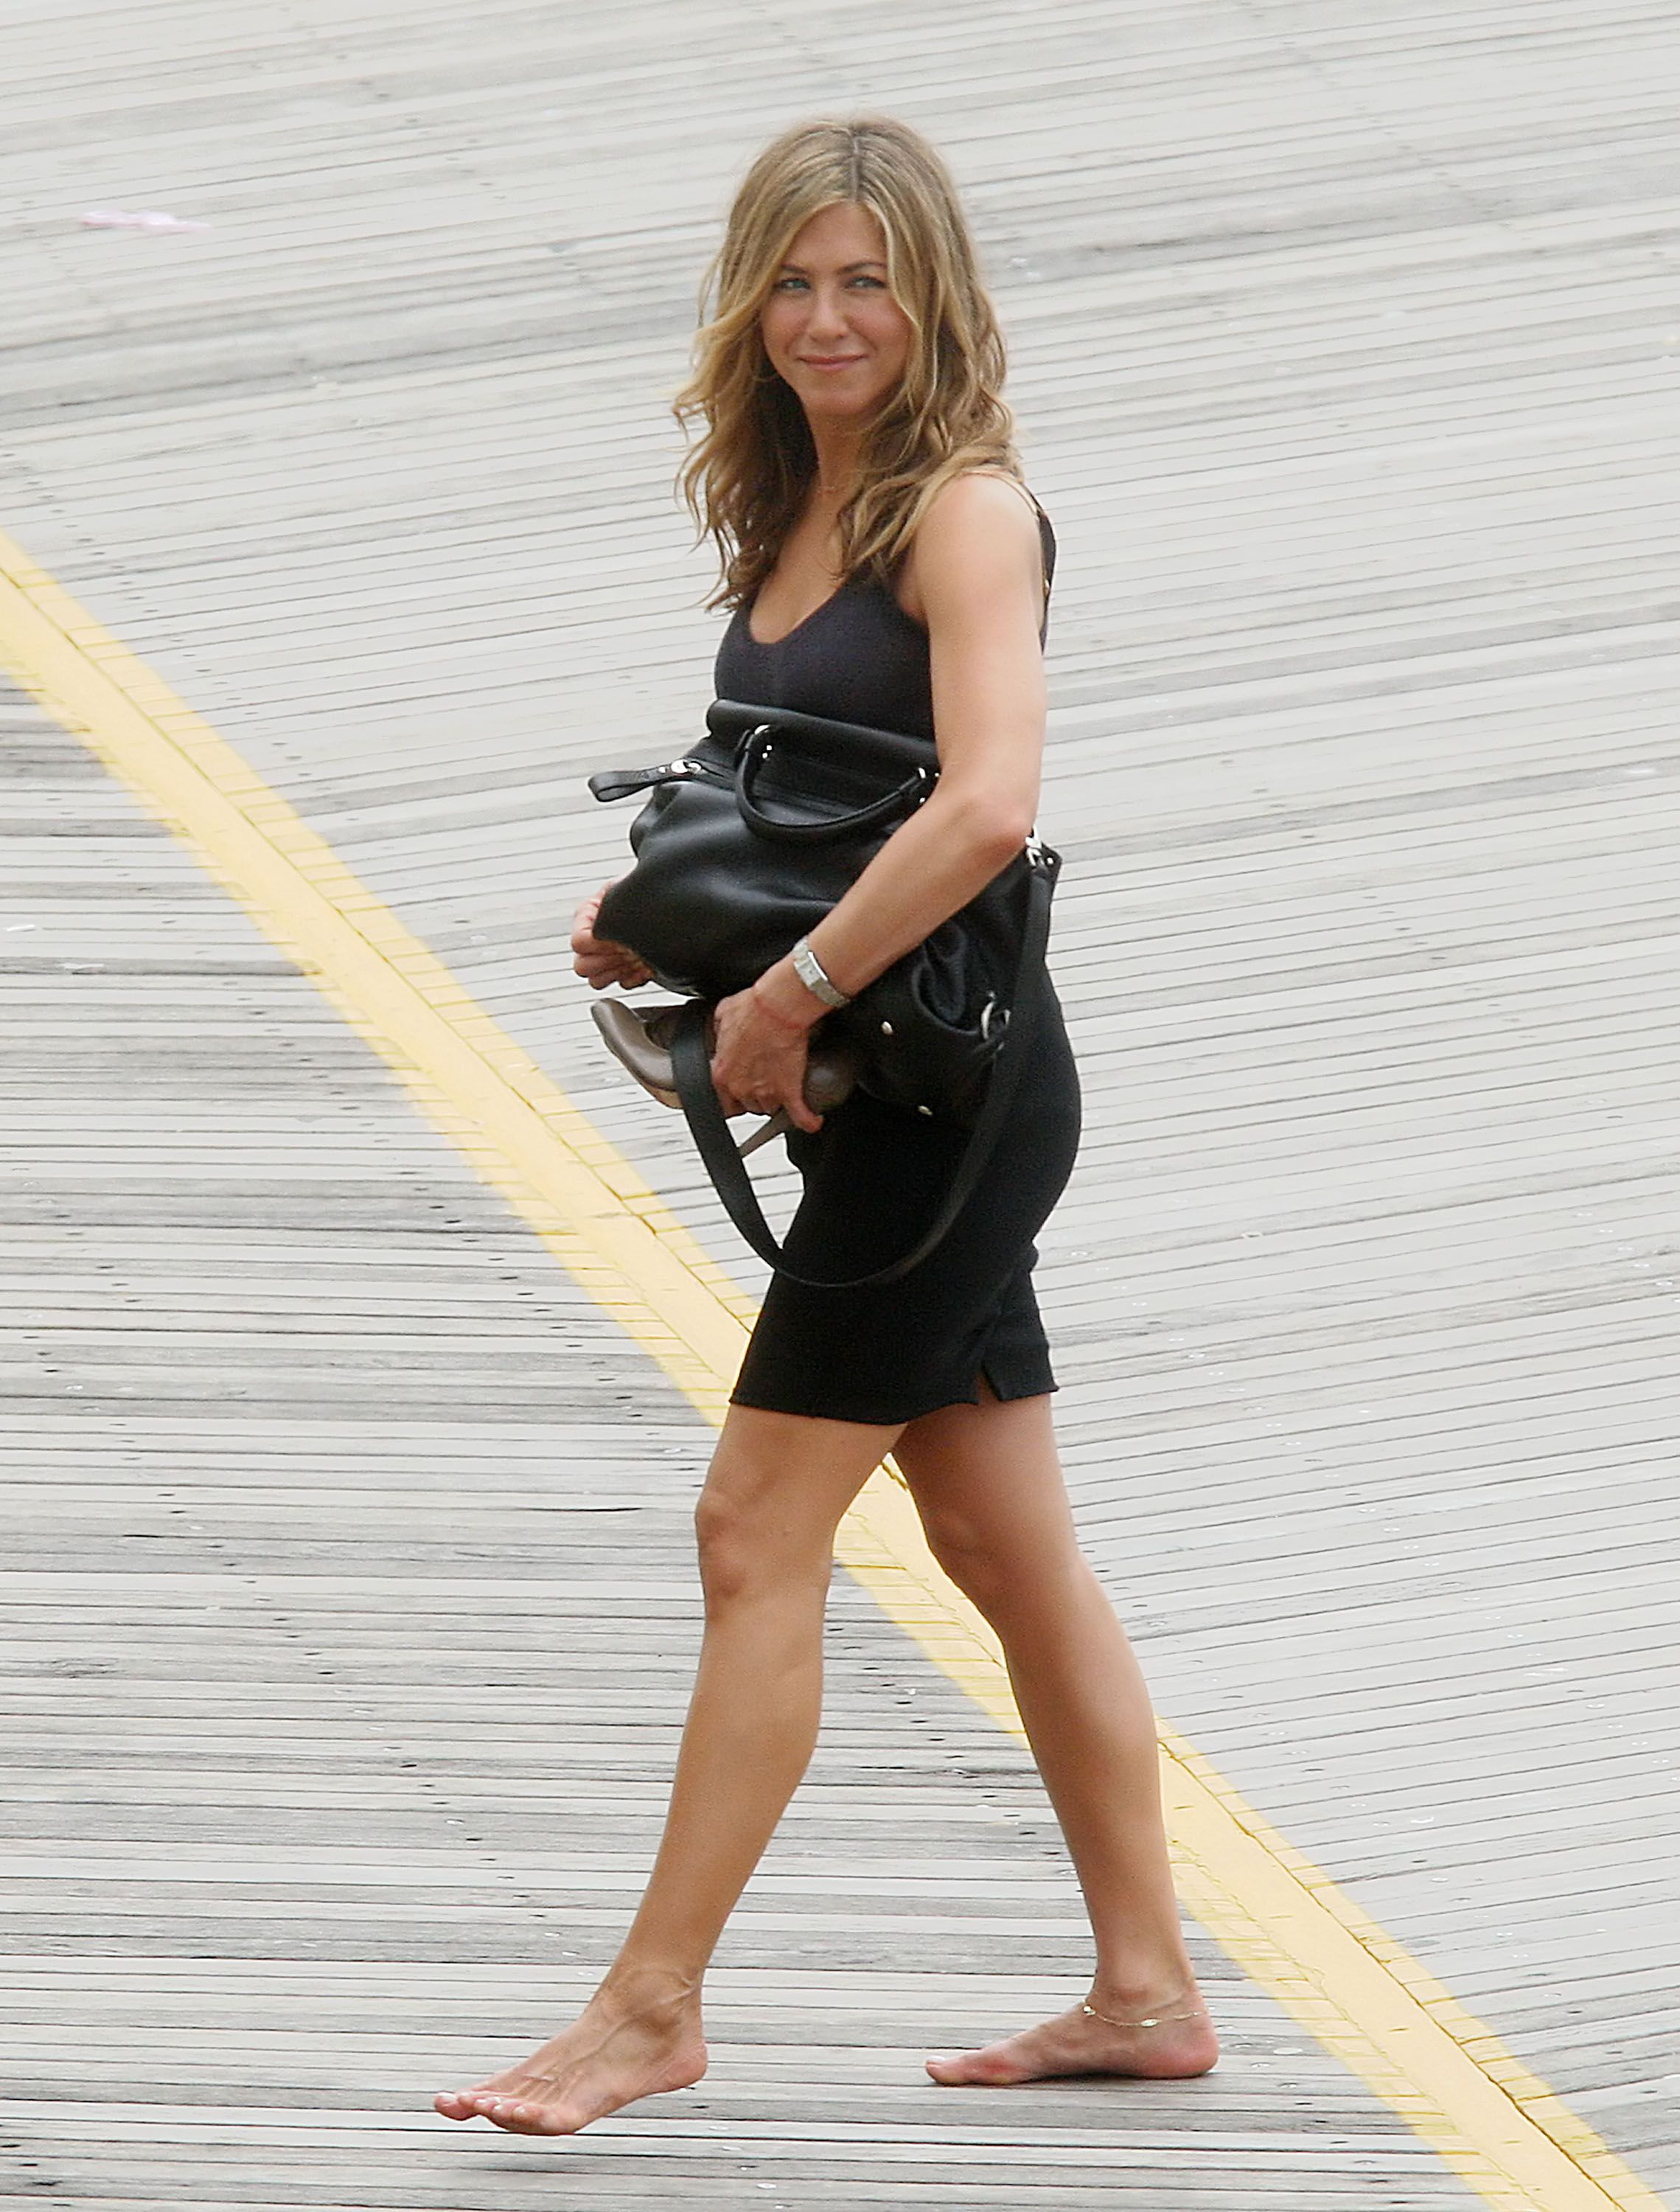 Pin by everyone can do diy projects on jennifer jennifer aniston feet jennifer aniston - Jennifer aniston barefoot ...